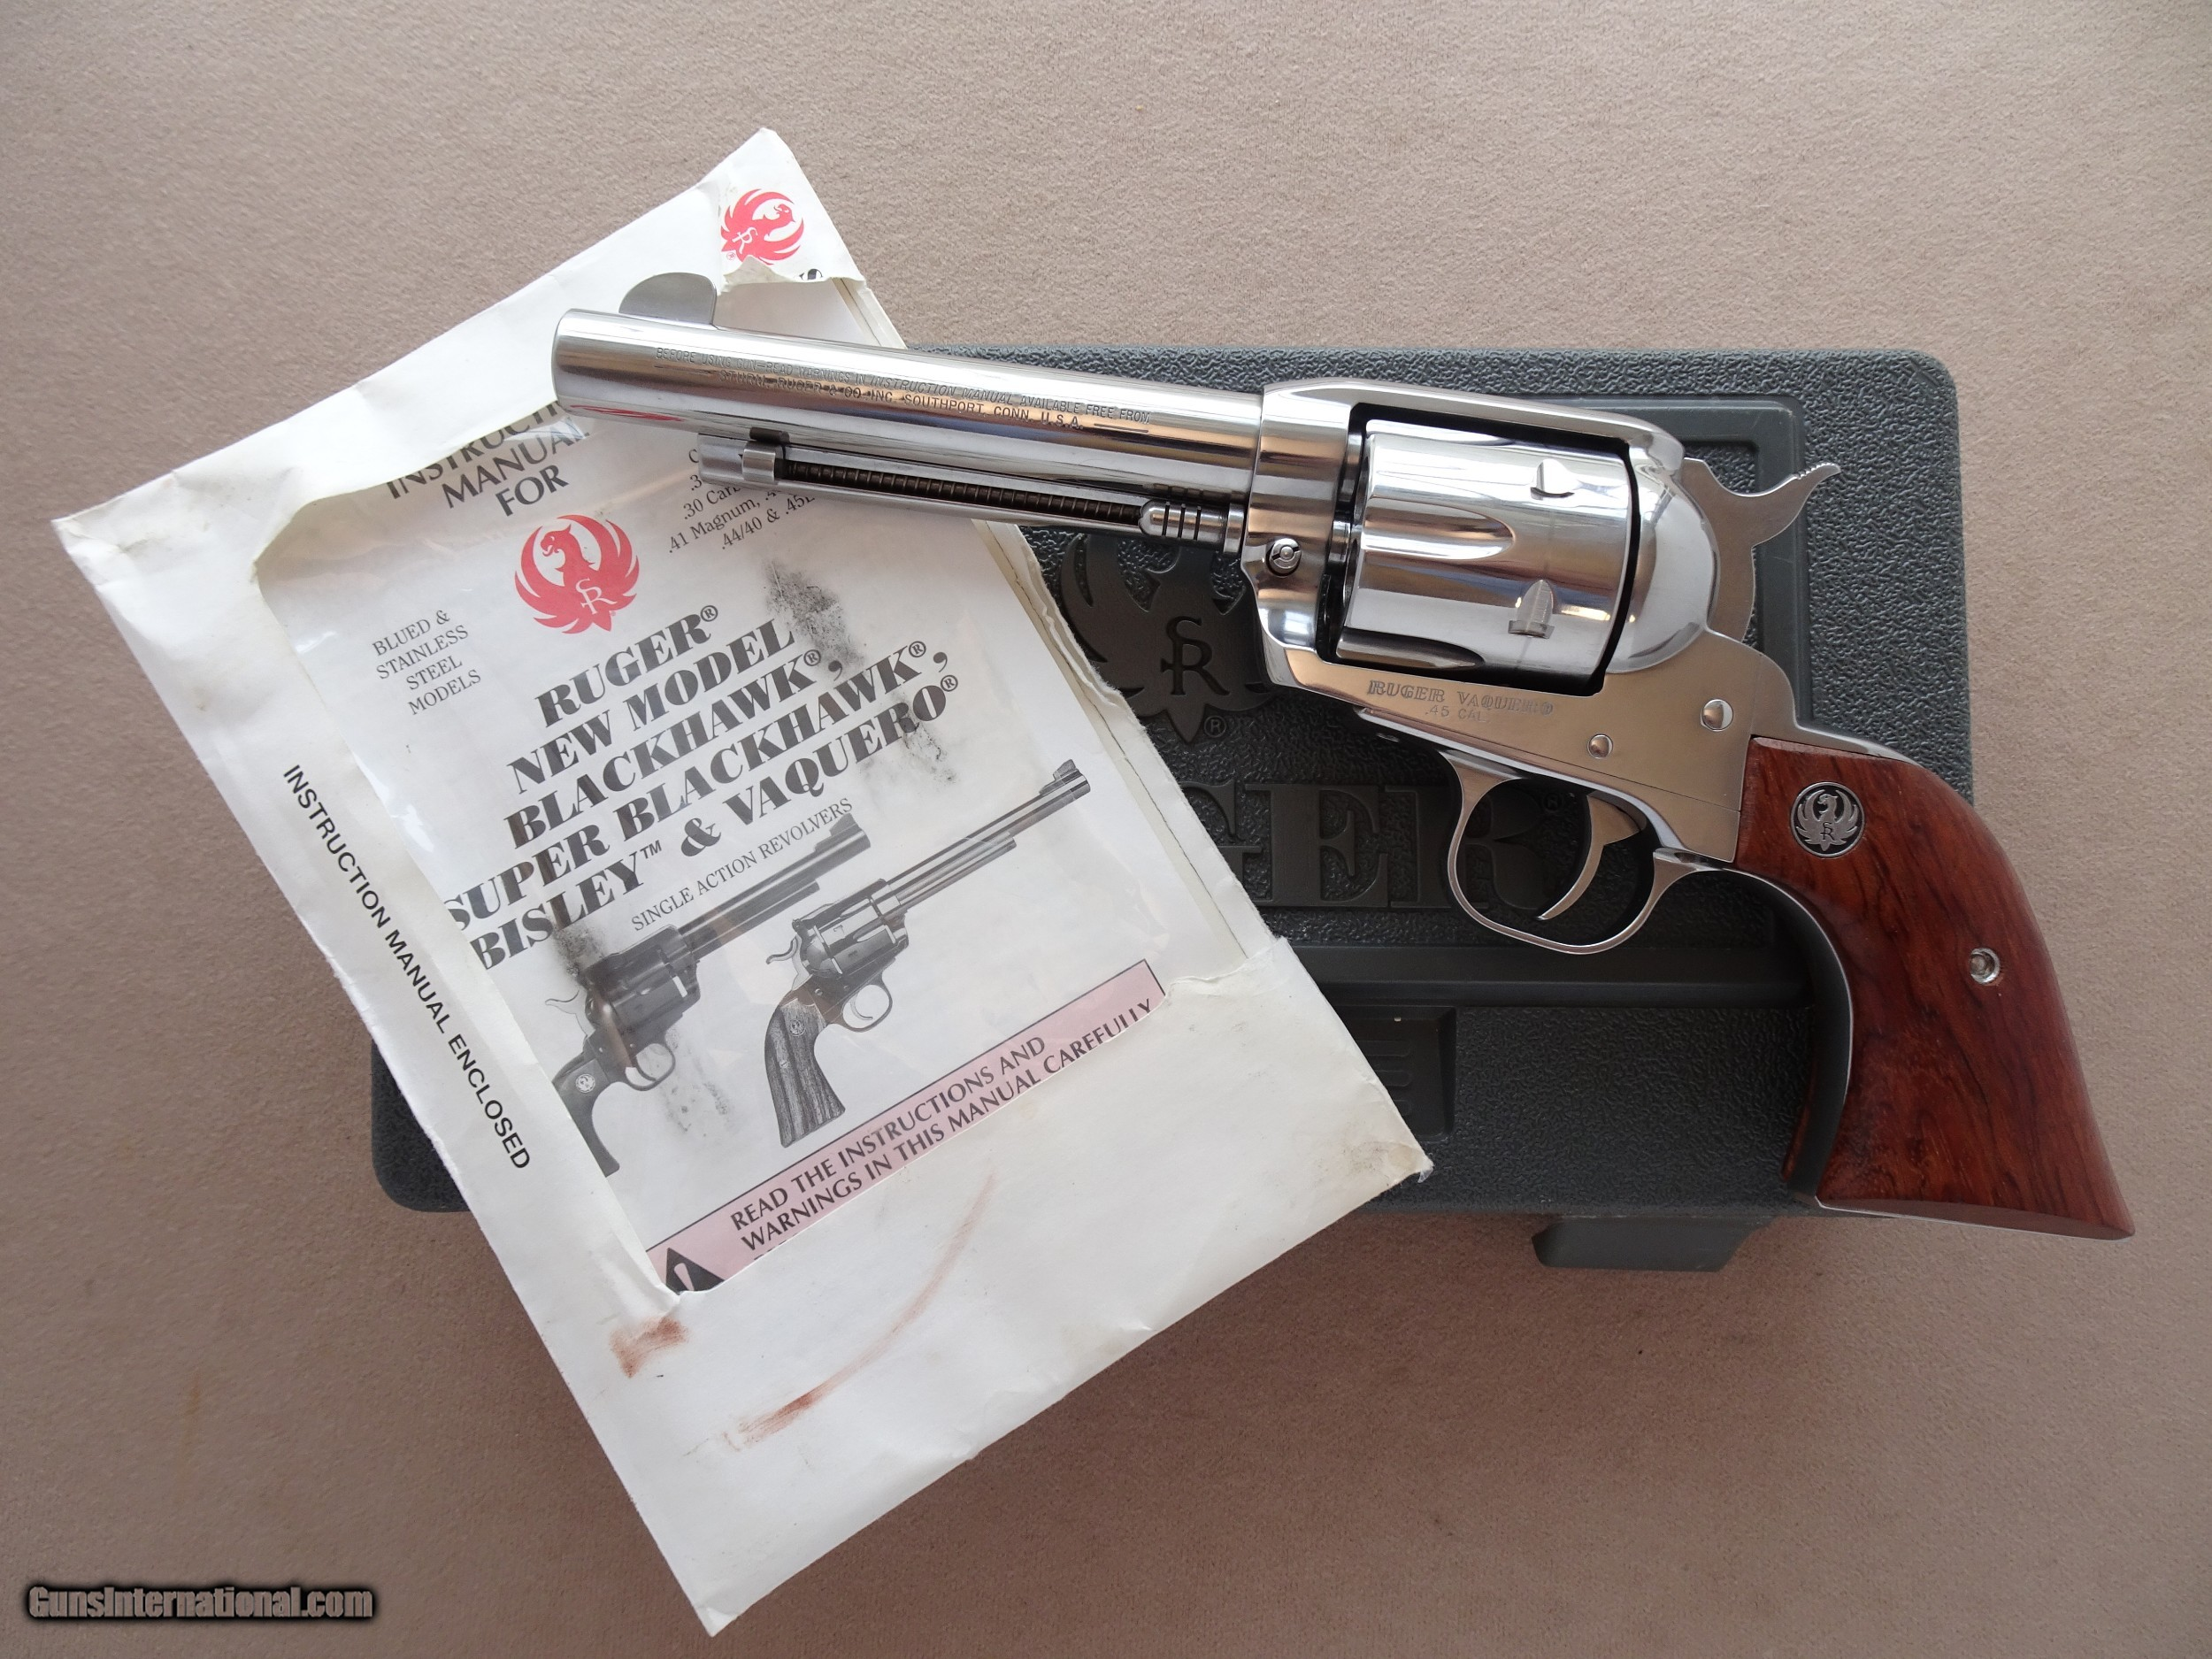 1995 Ruger Stainless Old Model Vaquero 5 5 In 45 Colt W Box Manual Discontinued Excellent Condition